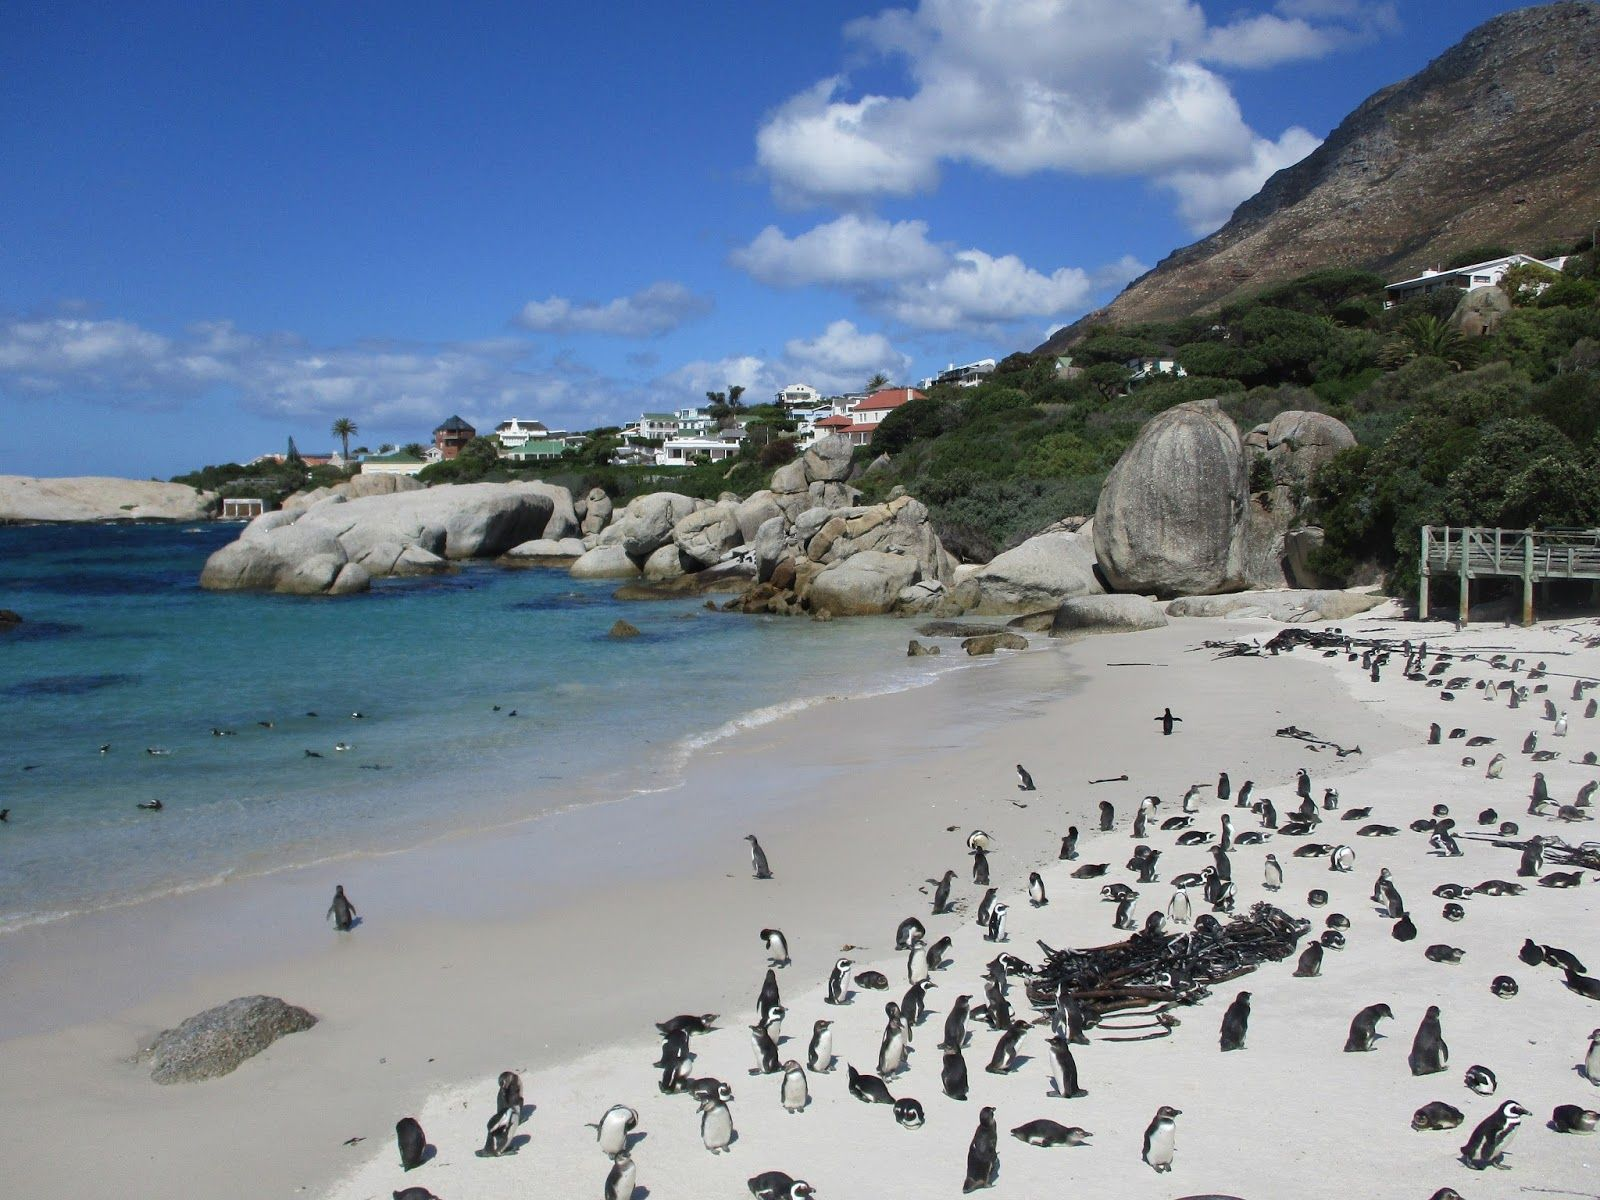 It S A Bit Surreal To See Penguins Sunbathing On Beach Boulders South Africa Click The Photo Discover Most Incredible Destinations